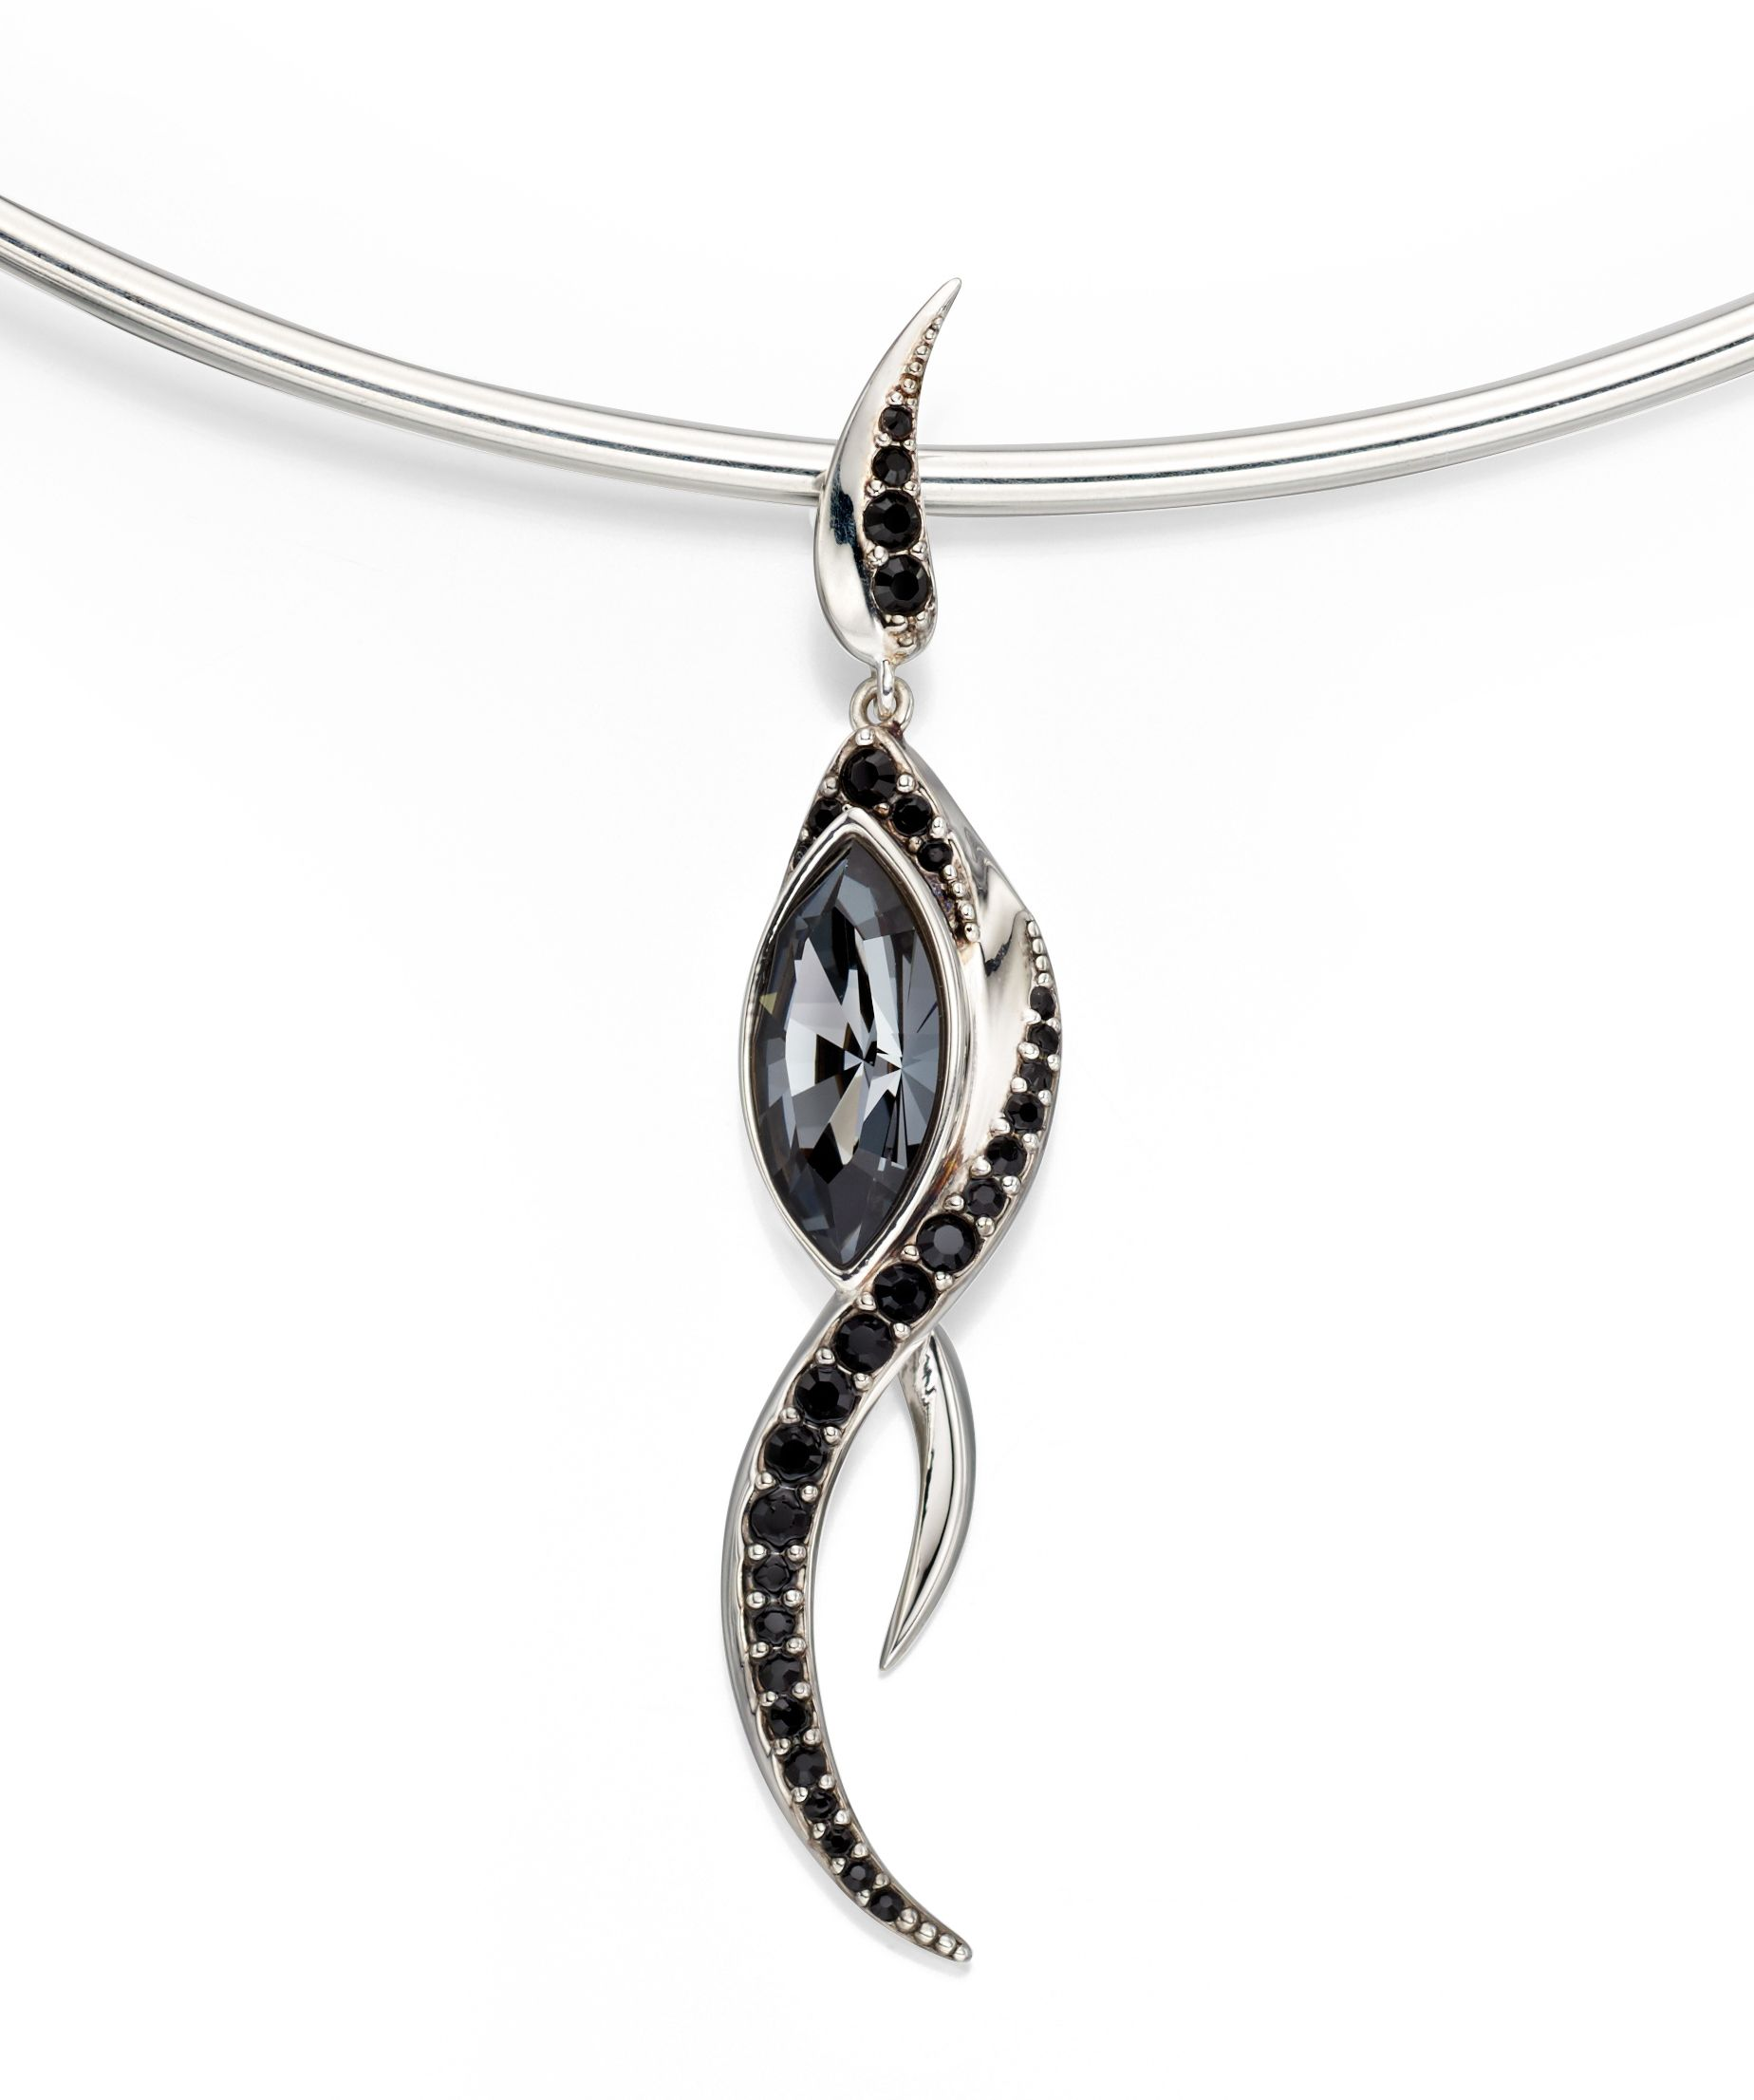 Elements Silver Womens 925 Sterling Silver Black Crystal by Swarovski Flame Drop Pendant Necklace of Length 46cm